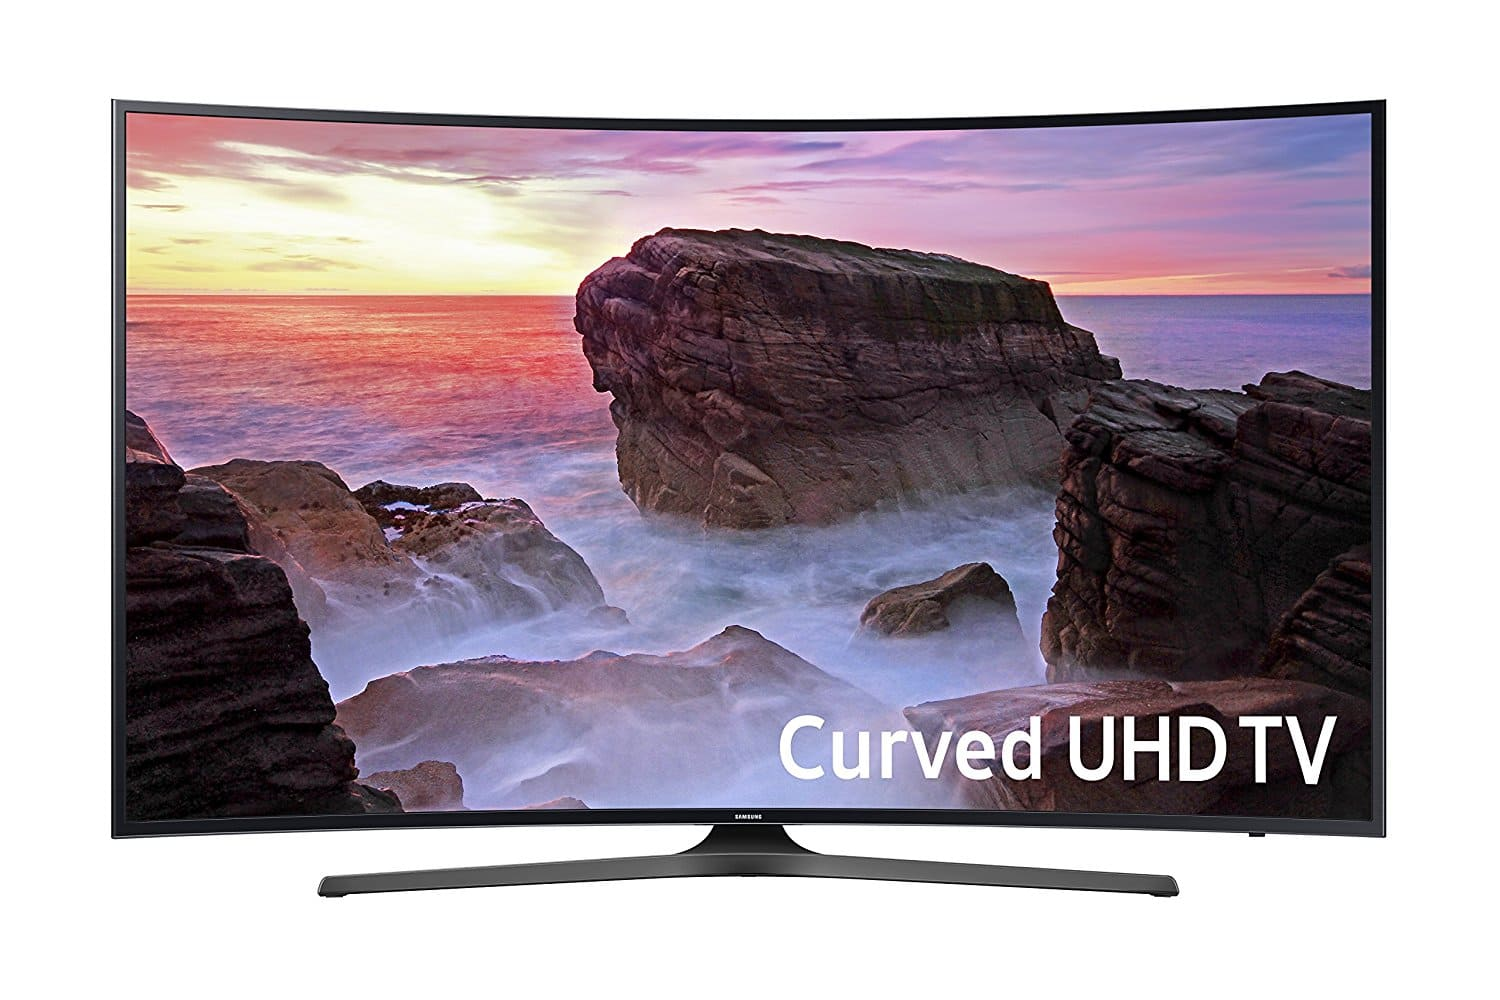 """55"""" Samsung UN55MU6500 4K UHD Curved TV + $250 Dell GC - $649.99 after $150 SD Rebate + Free S/H (or $549.99 after SD rebate + AMEX Offer - YMMV)"""